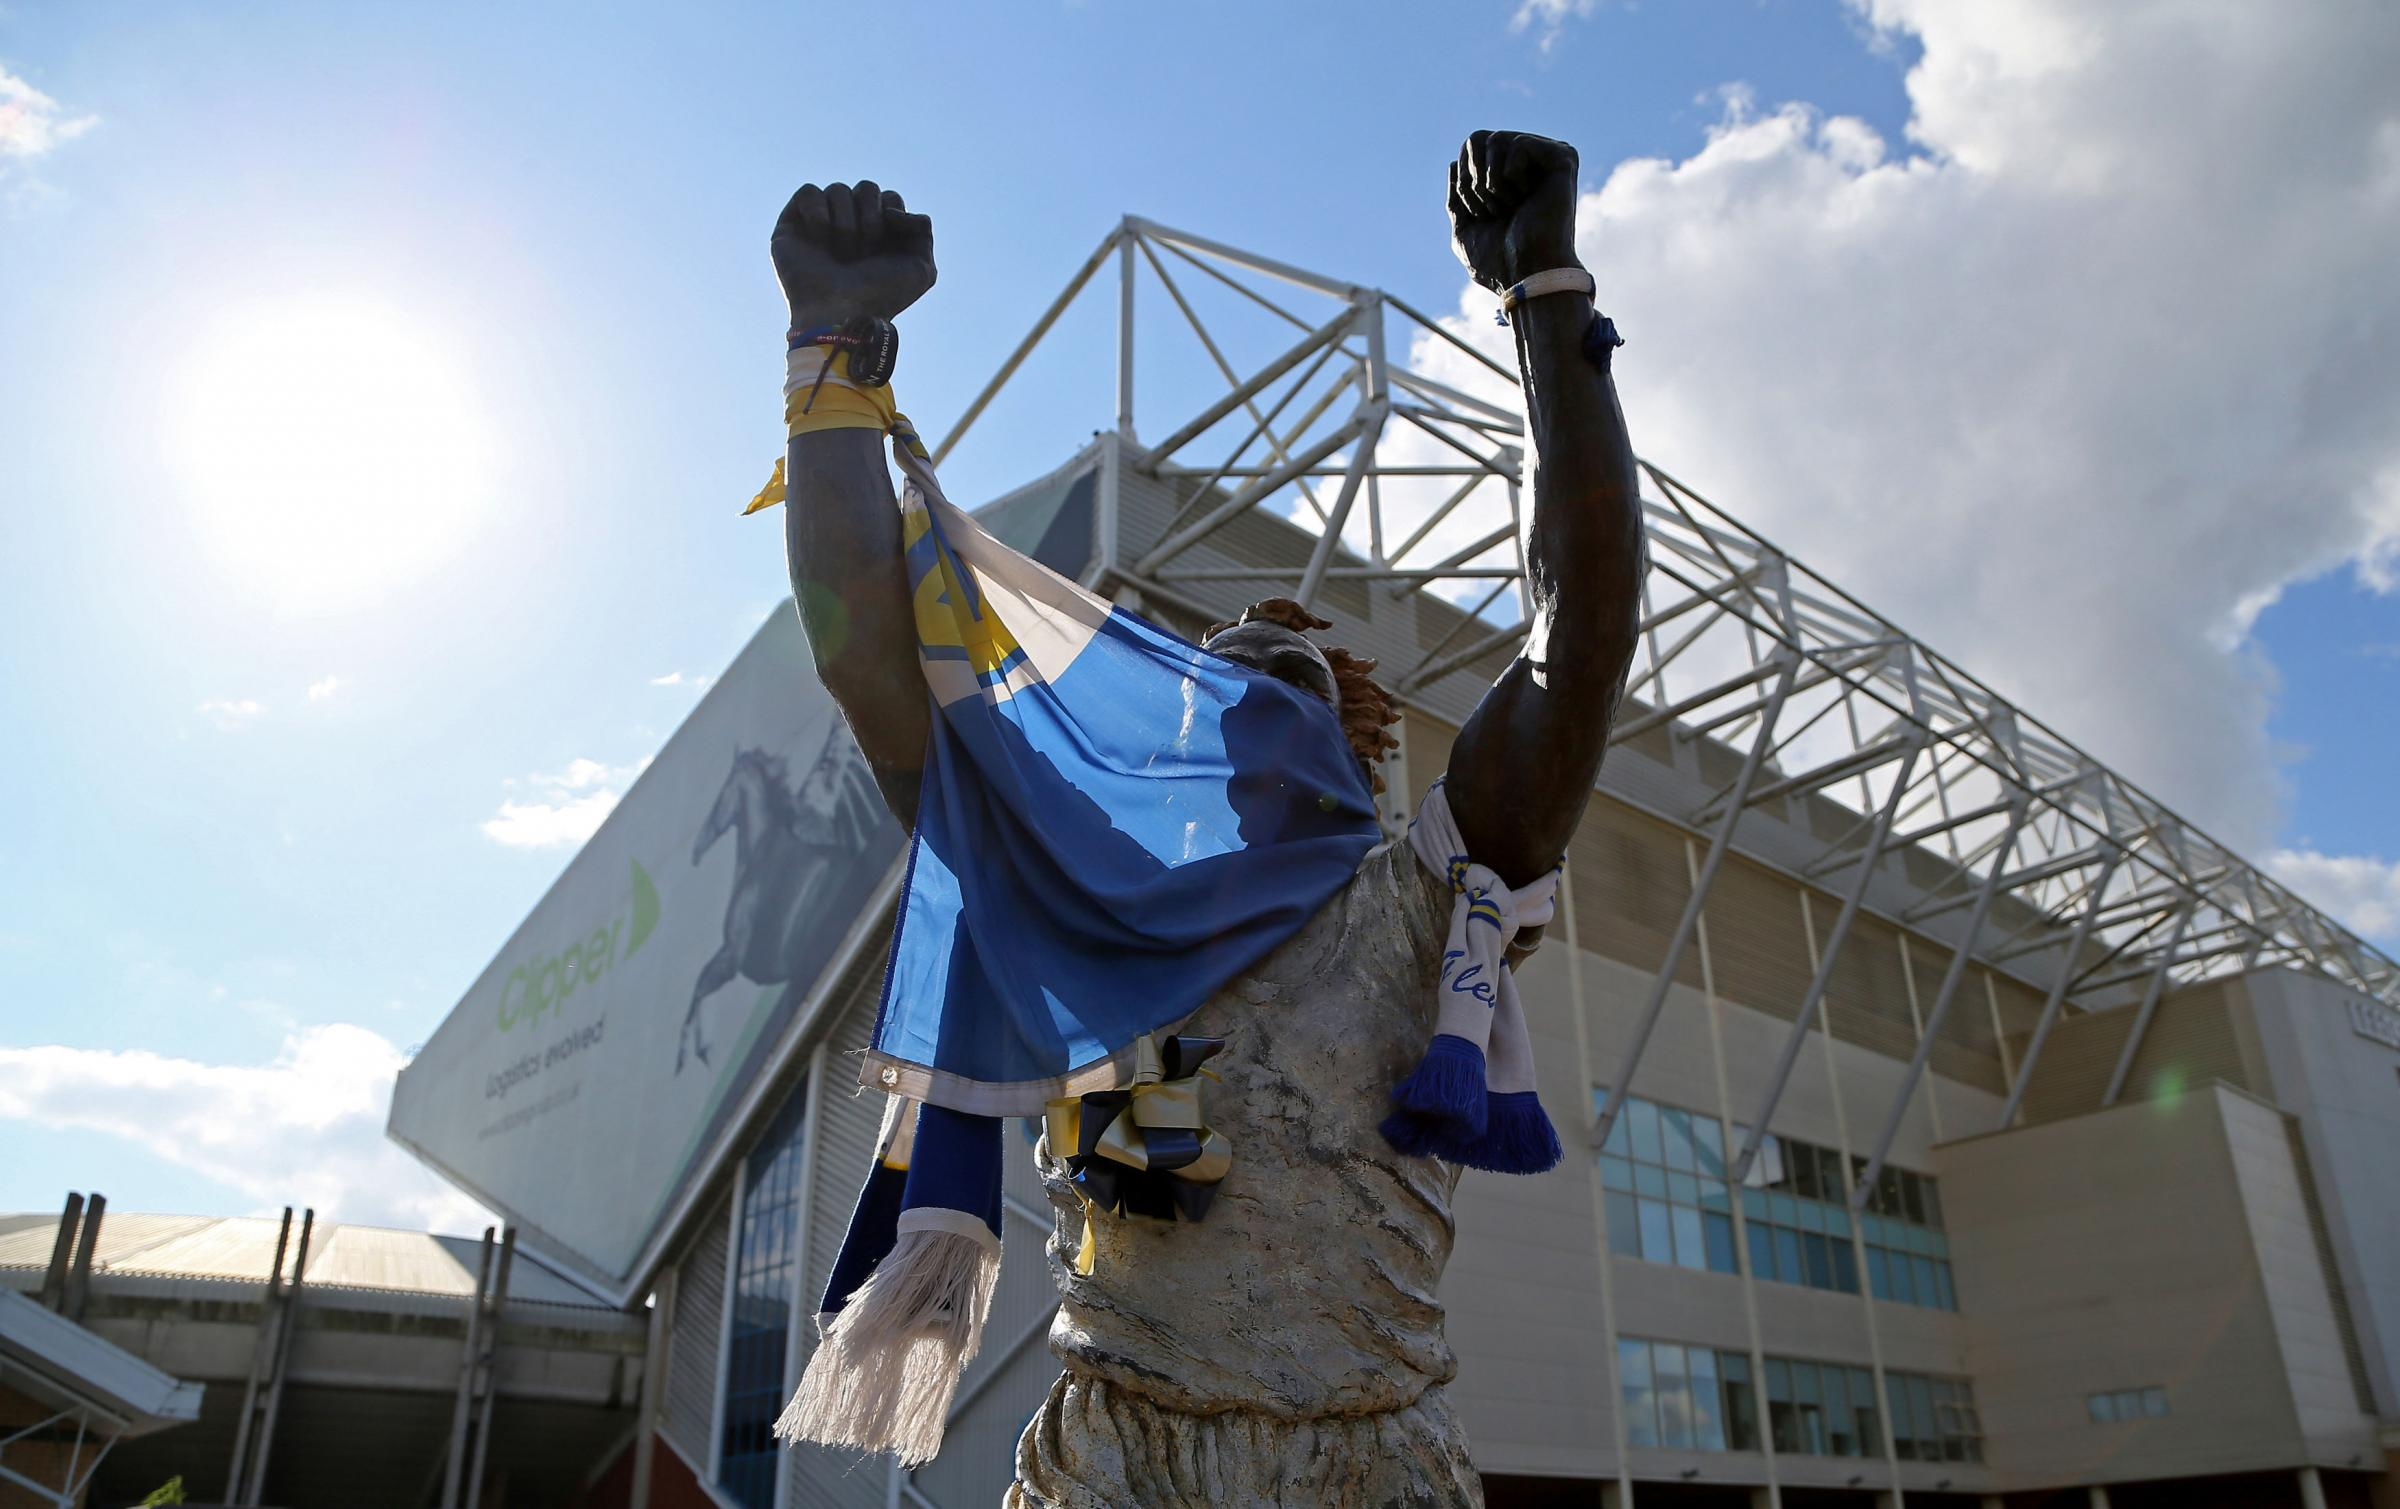 GIANTS: Newport County fans will be welcomed by the Billy Bremner statue at Leeds United's Elland Road ground next week